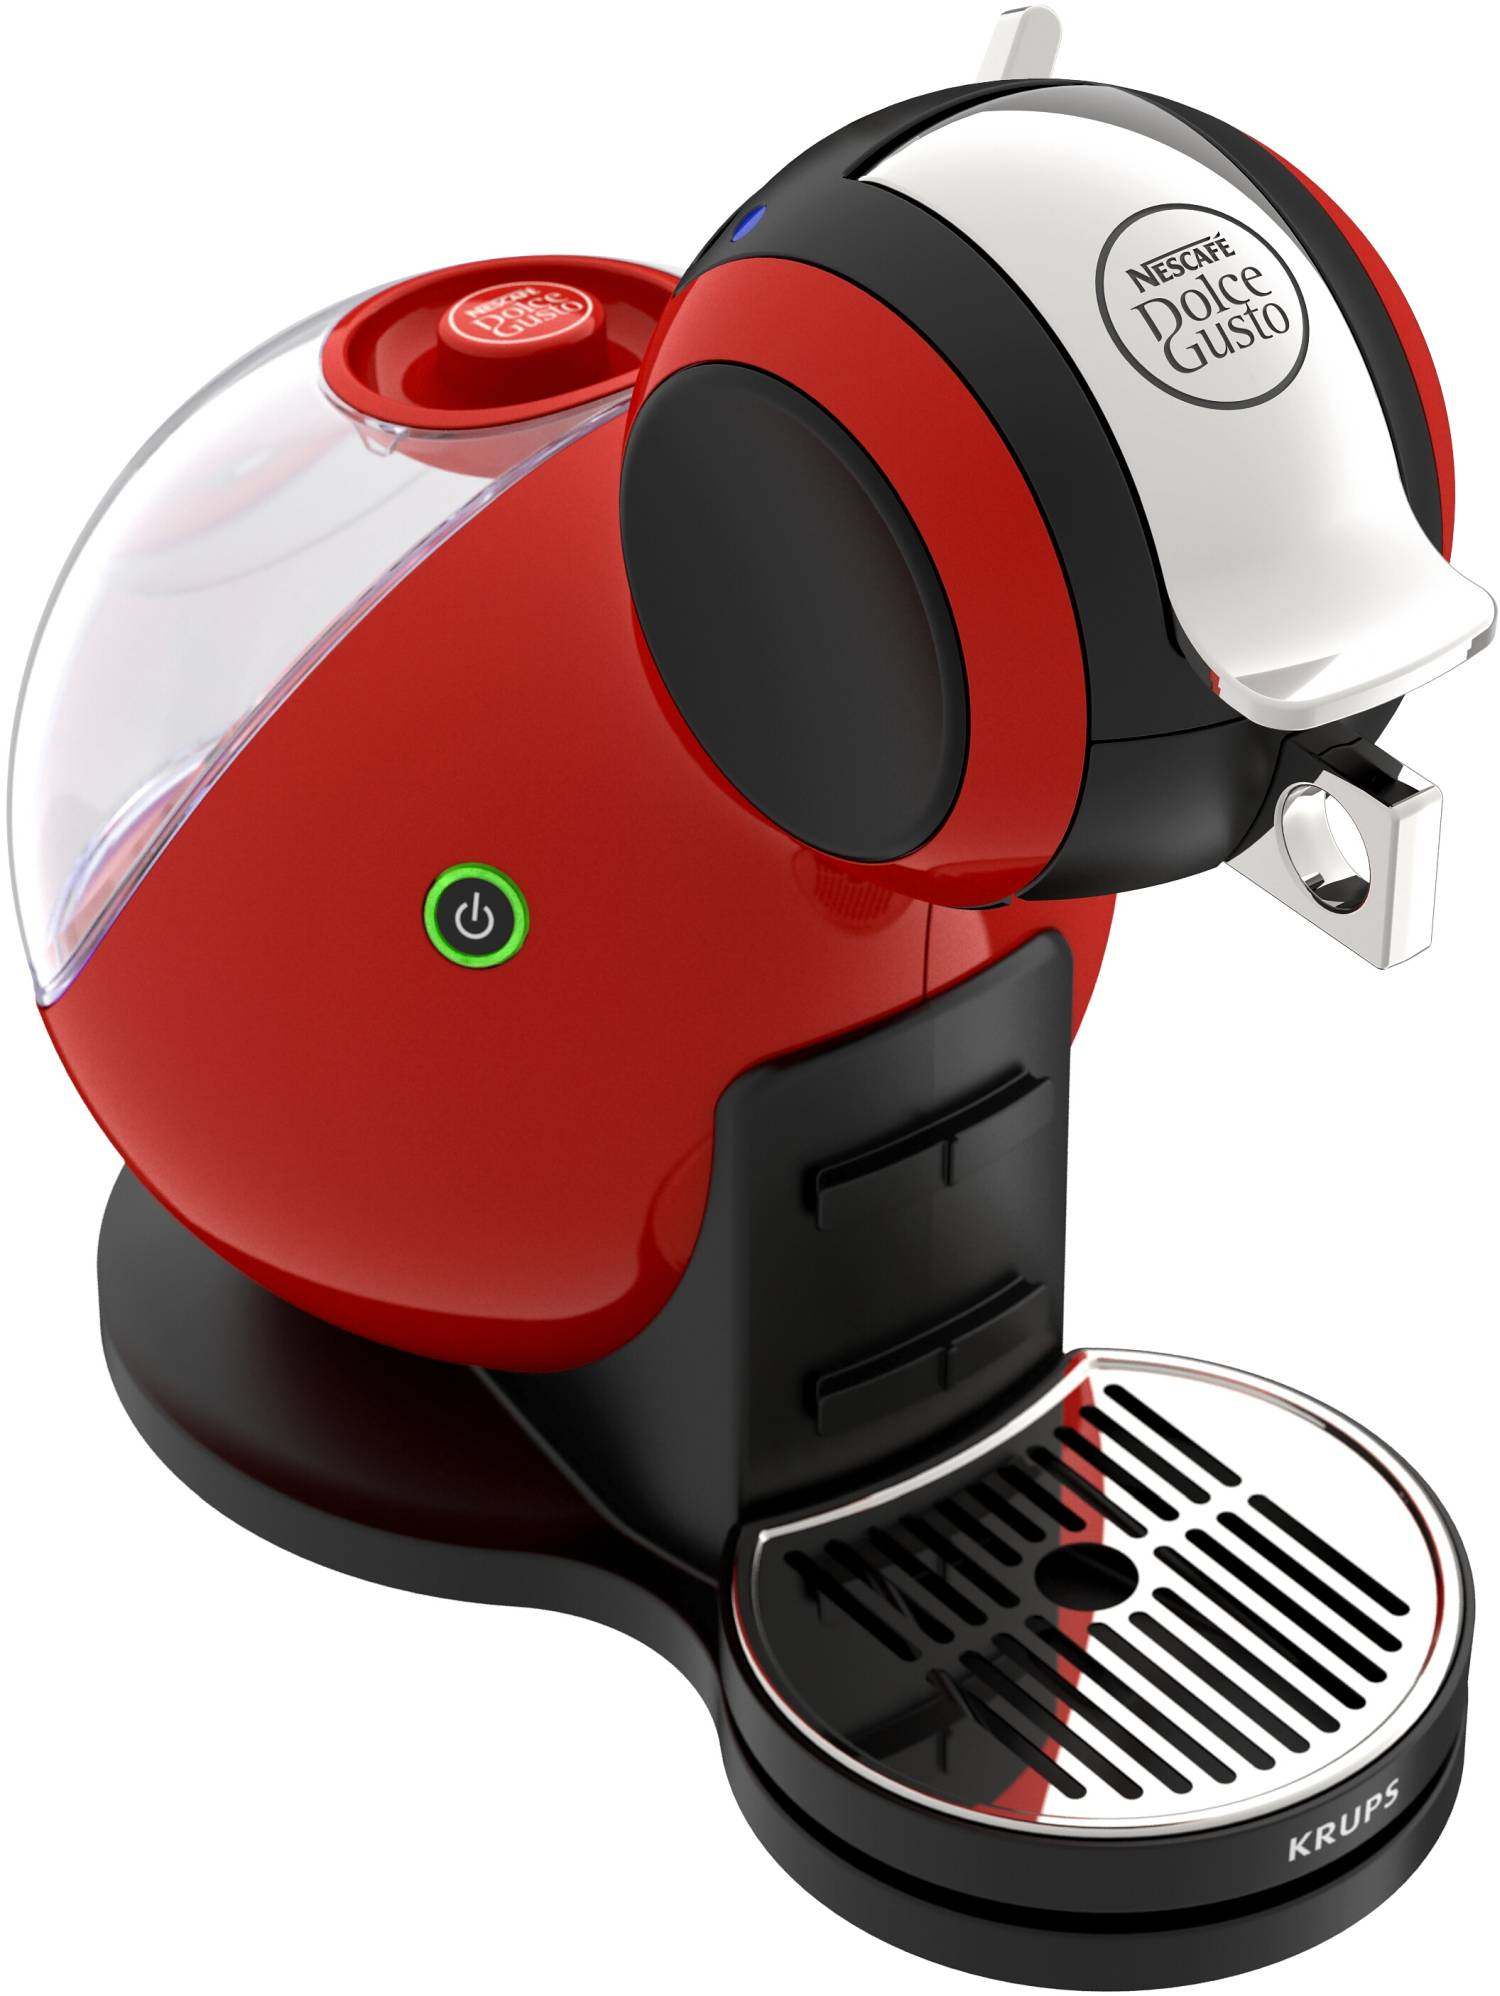 krups nescafe dolce gusto melody 3 kapsel kaffeemaschine m3 rot neu gastro. Black Bedroom Furniture Sets. Home Design Ideas